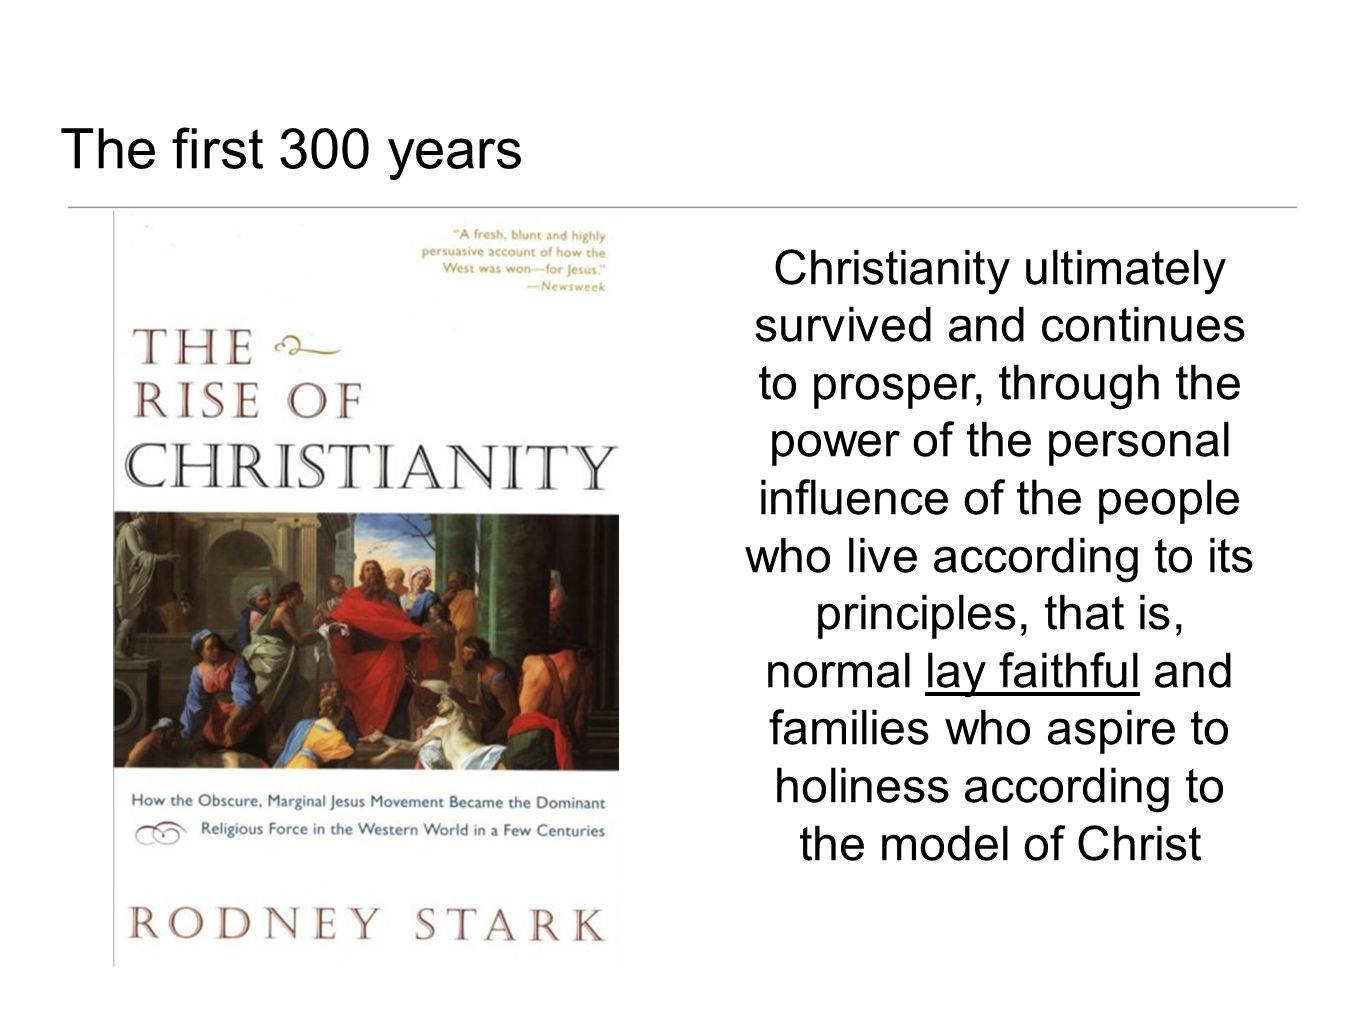 The first 300 years